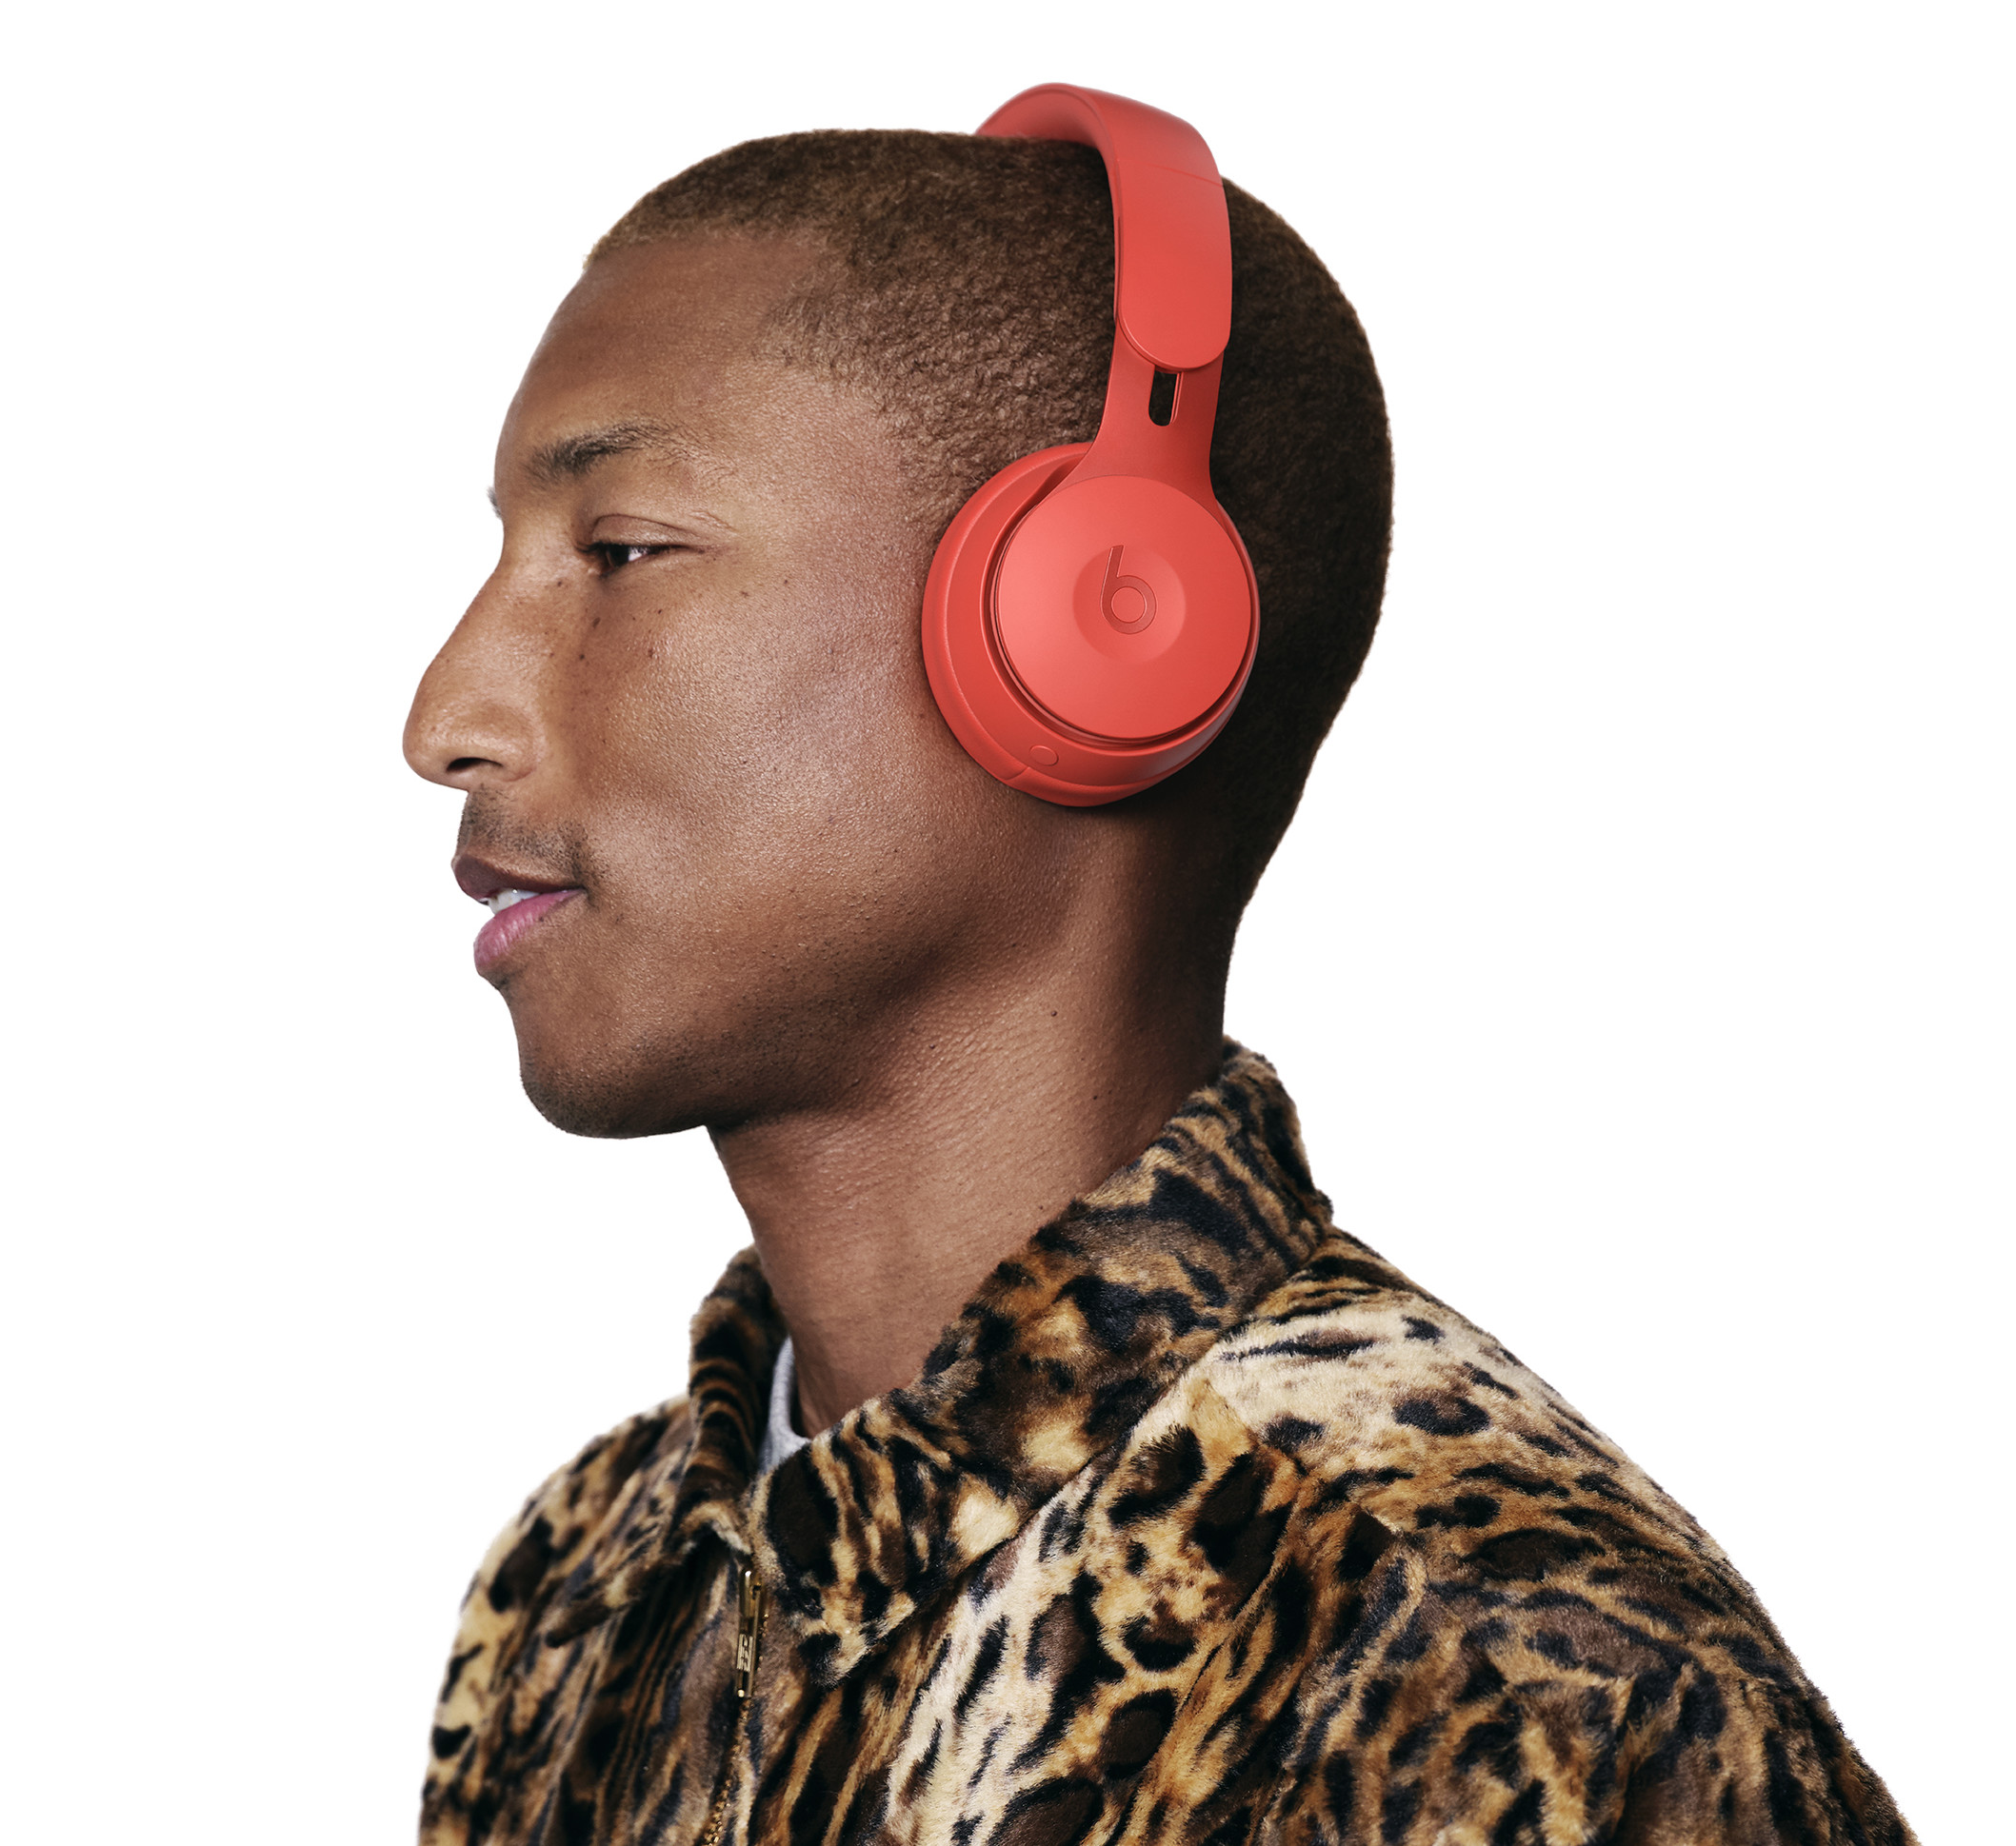 Pharrell Williams Fronts Beats by Dre New 'More Matte' Solo Pro Headphone Collection